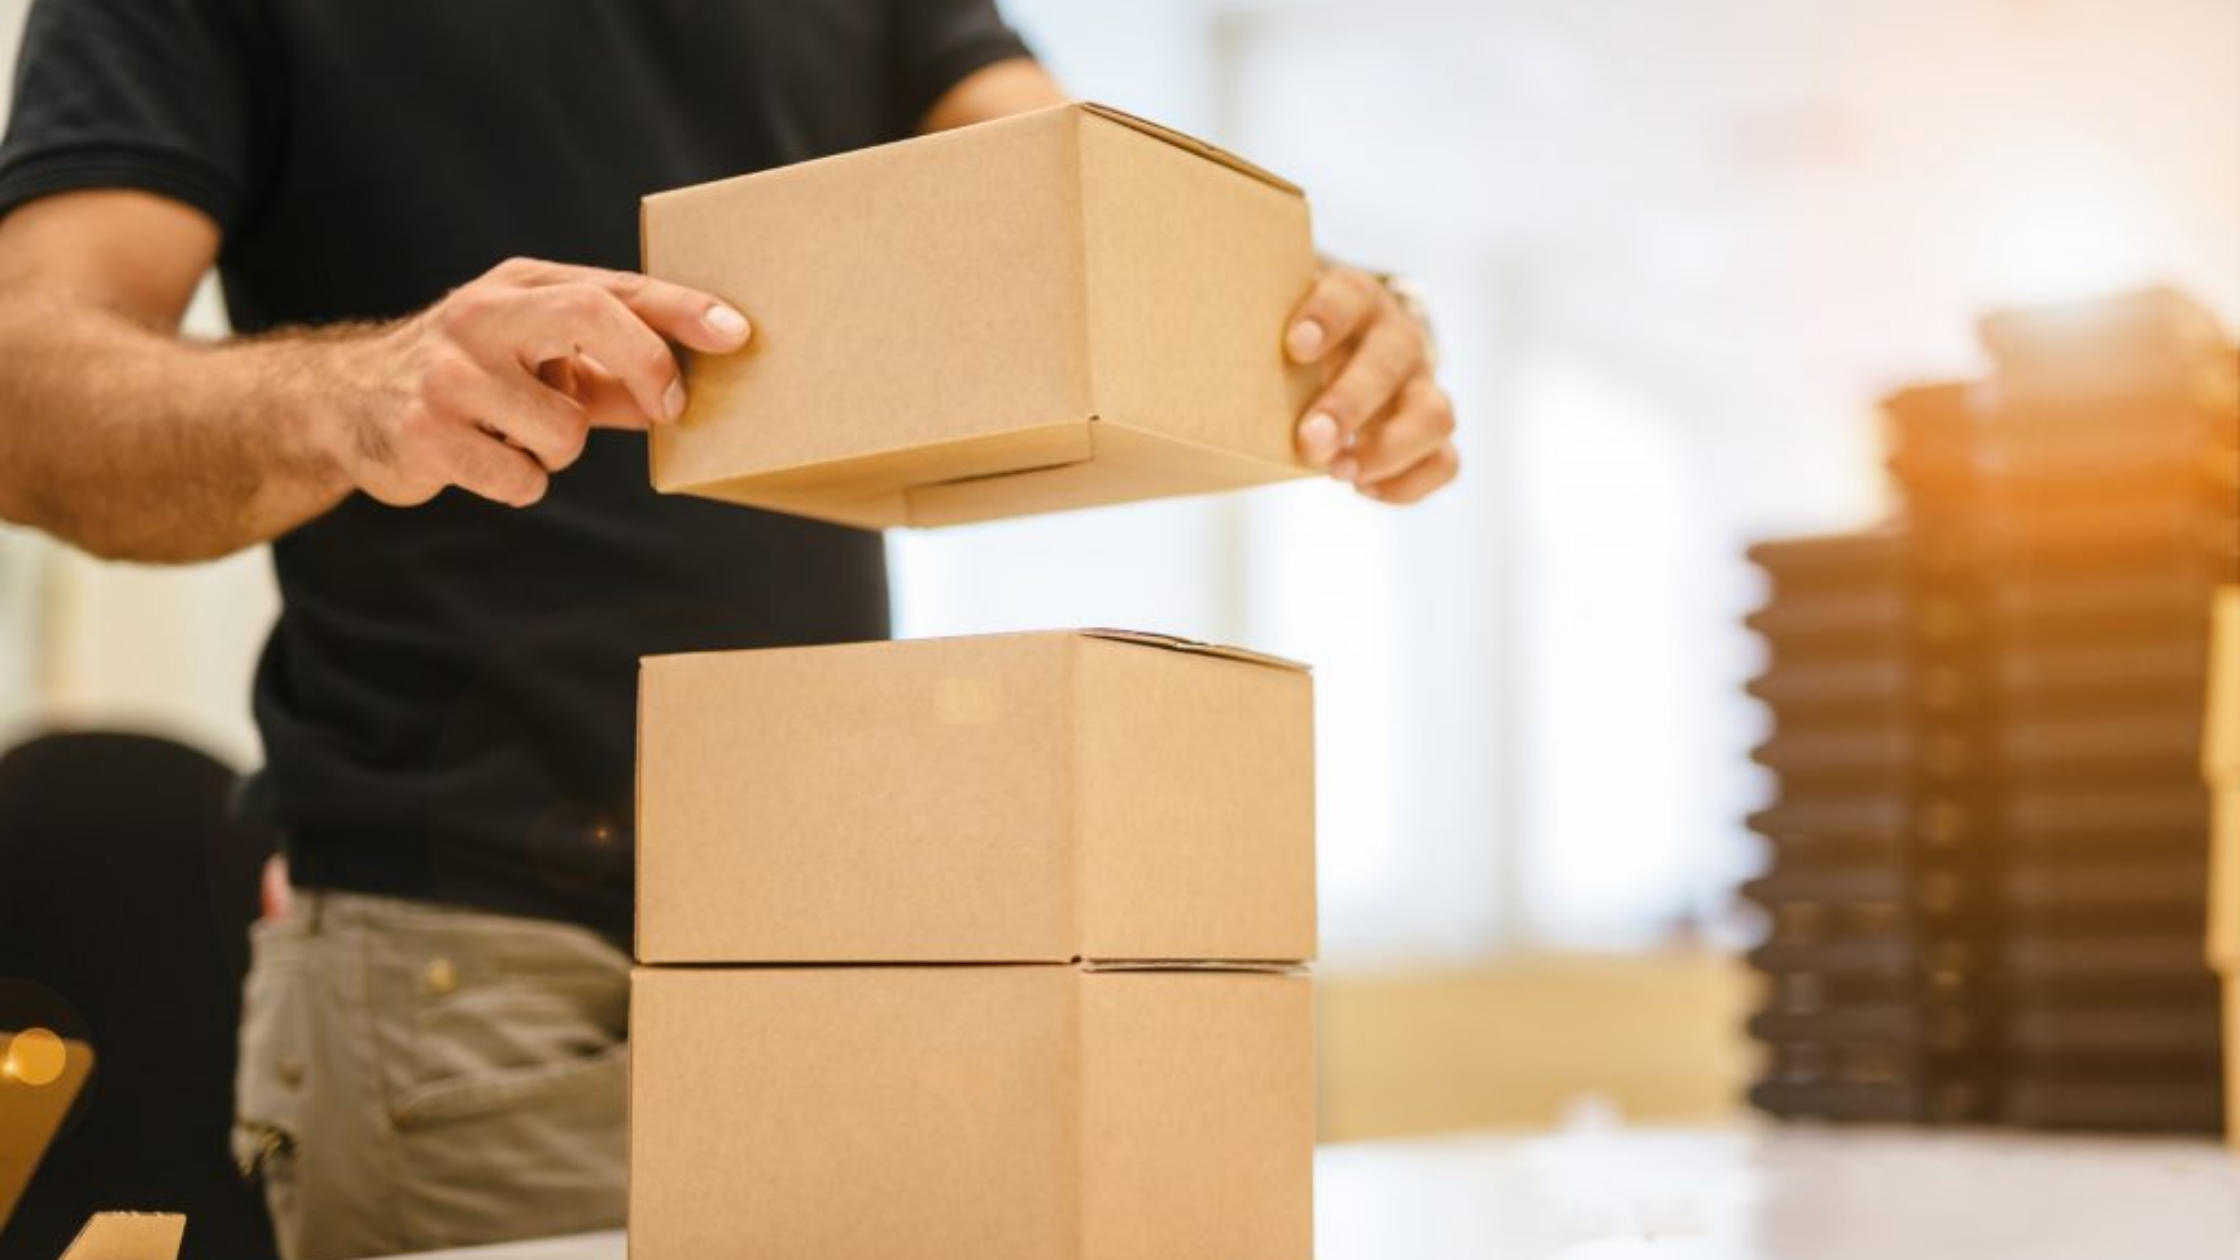 8 Simple Ideas to Improve Your Product Shipping Process